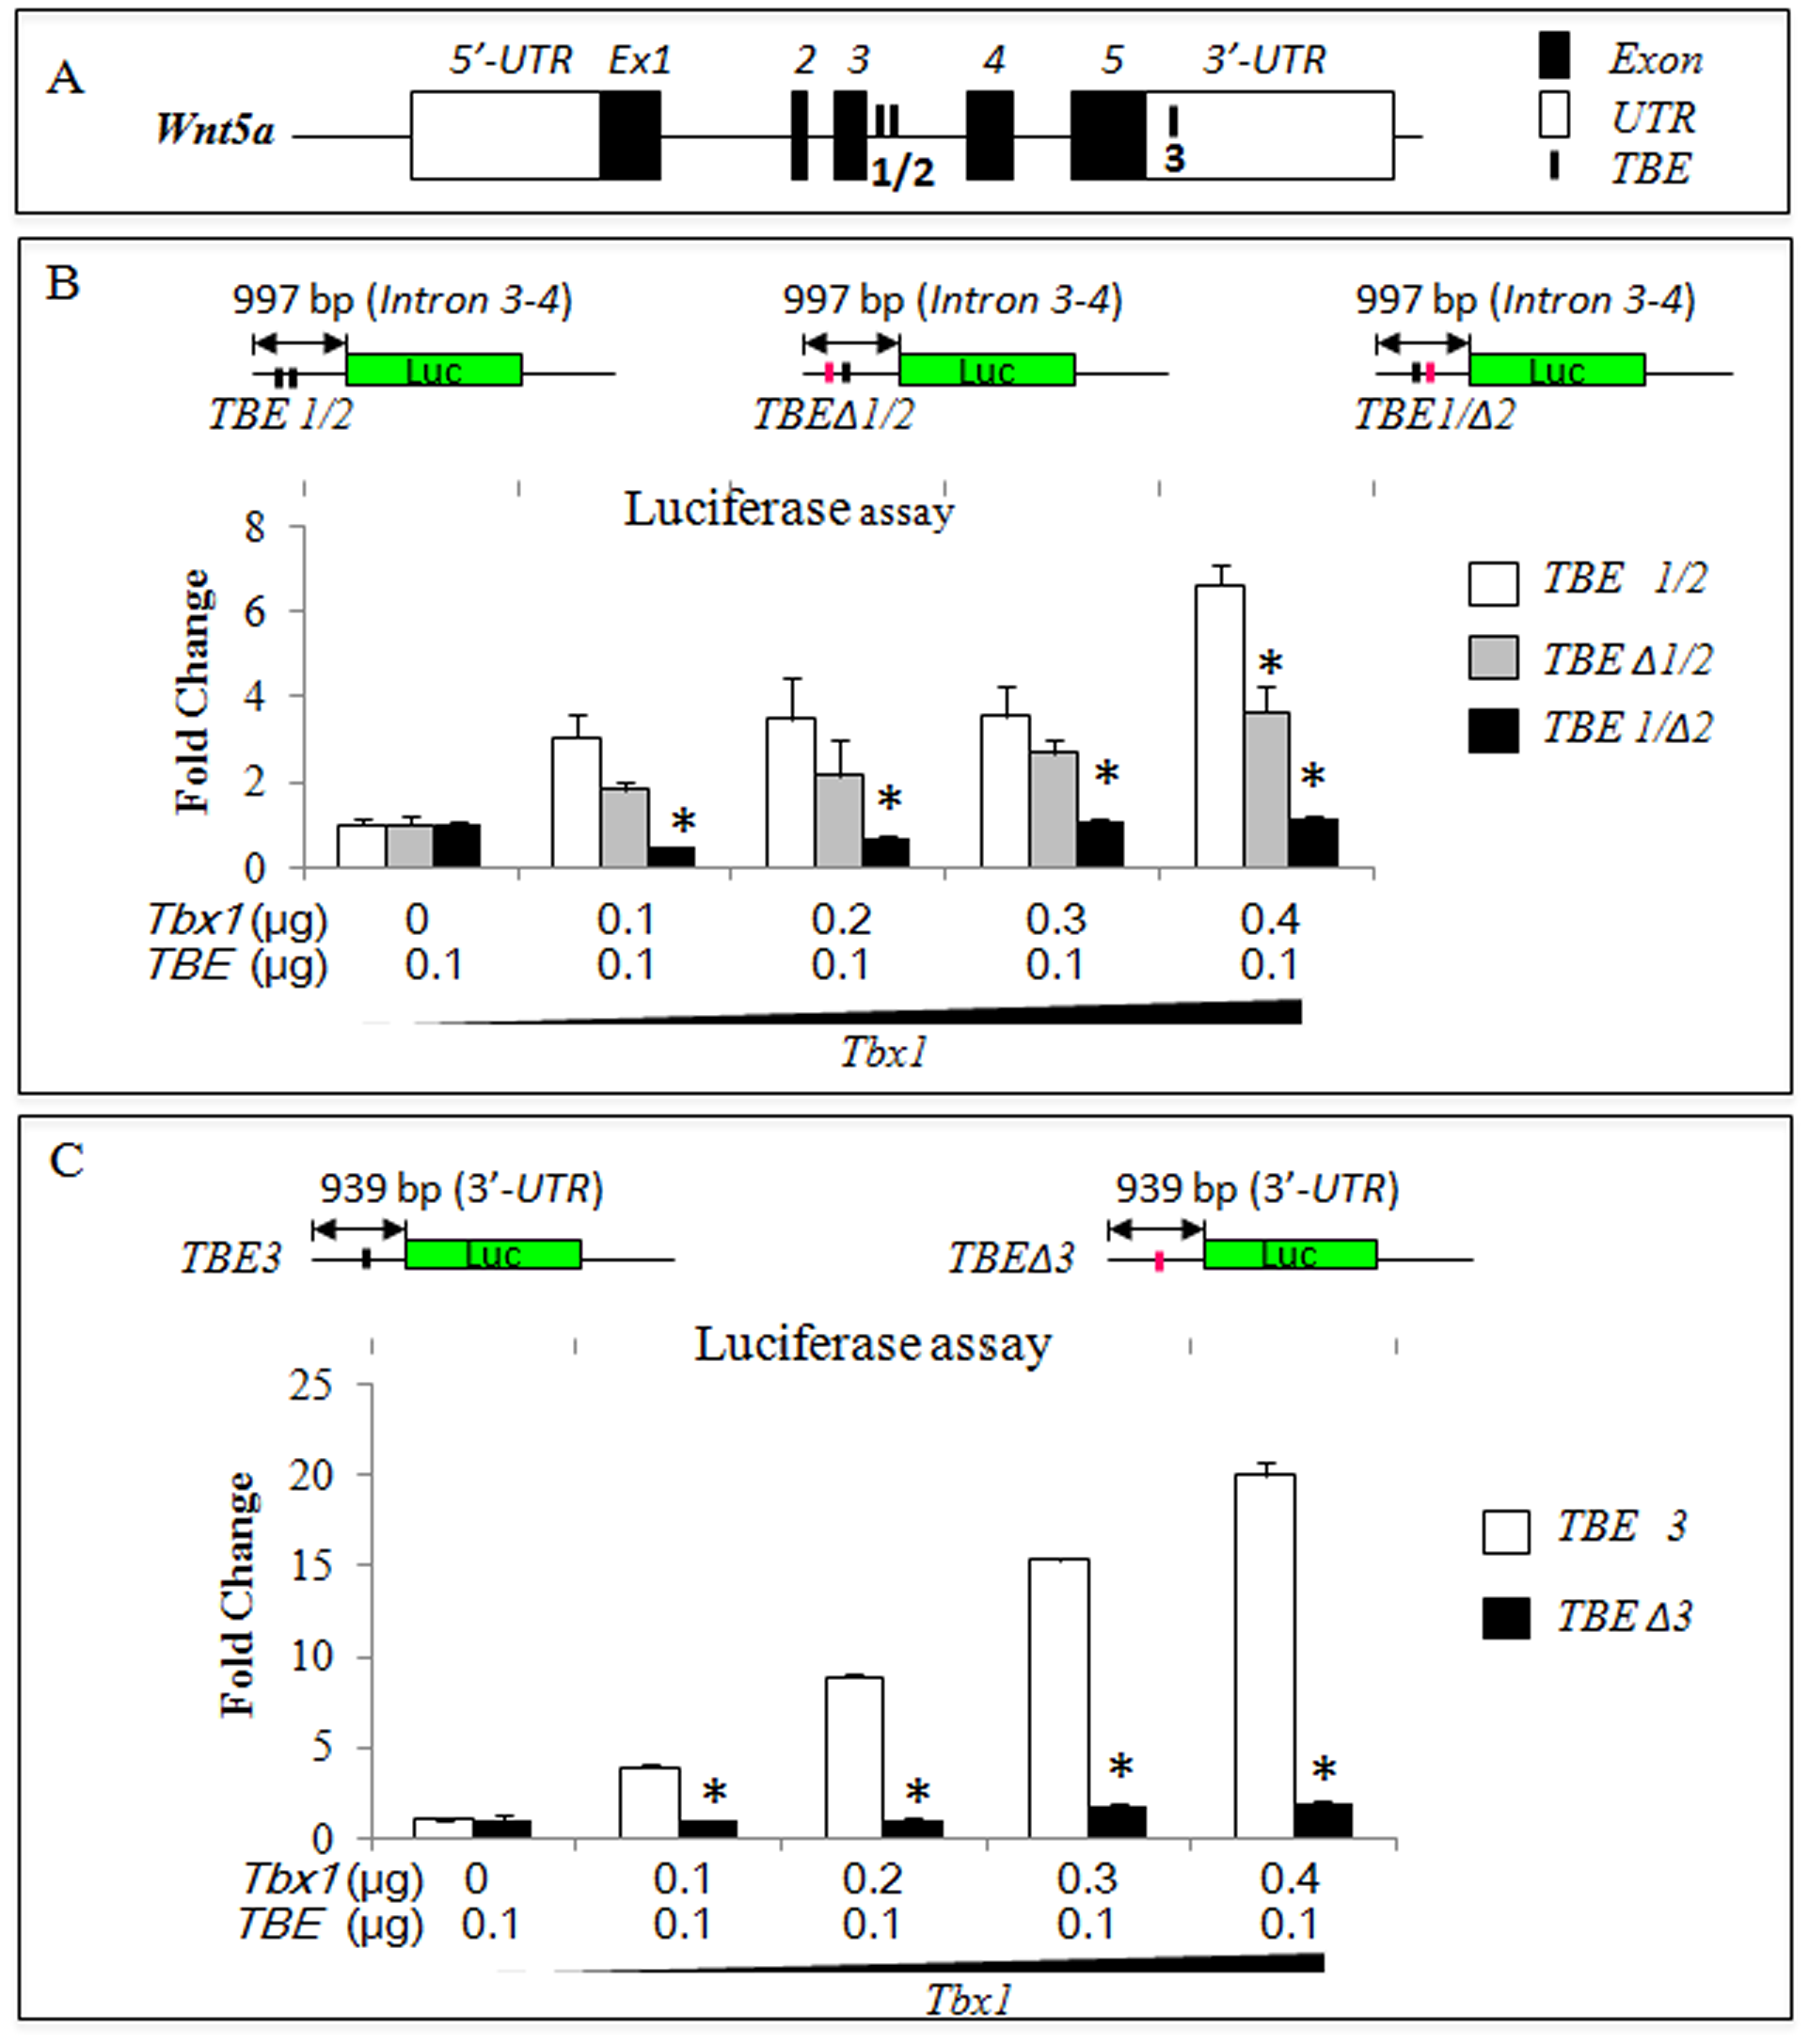 <i>Wnt5a</i> has conserved T-box binding elements (TBEs) that are required for response to <i>Tbx1</i> in luciferase assays.